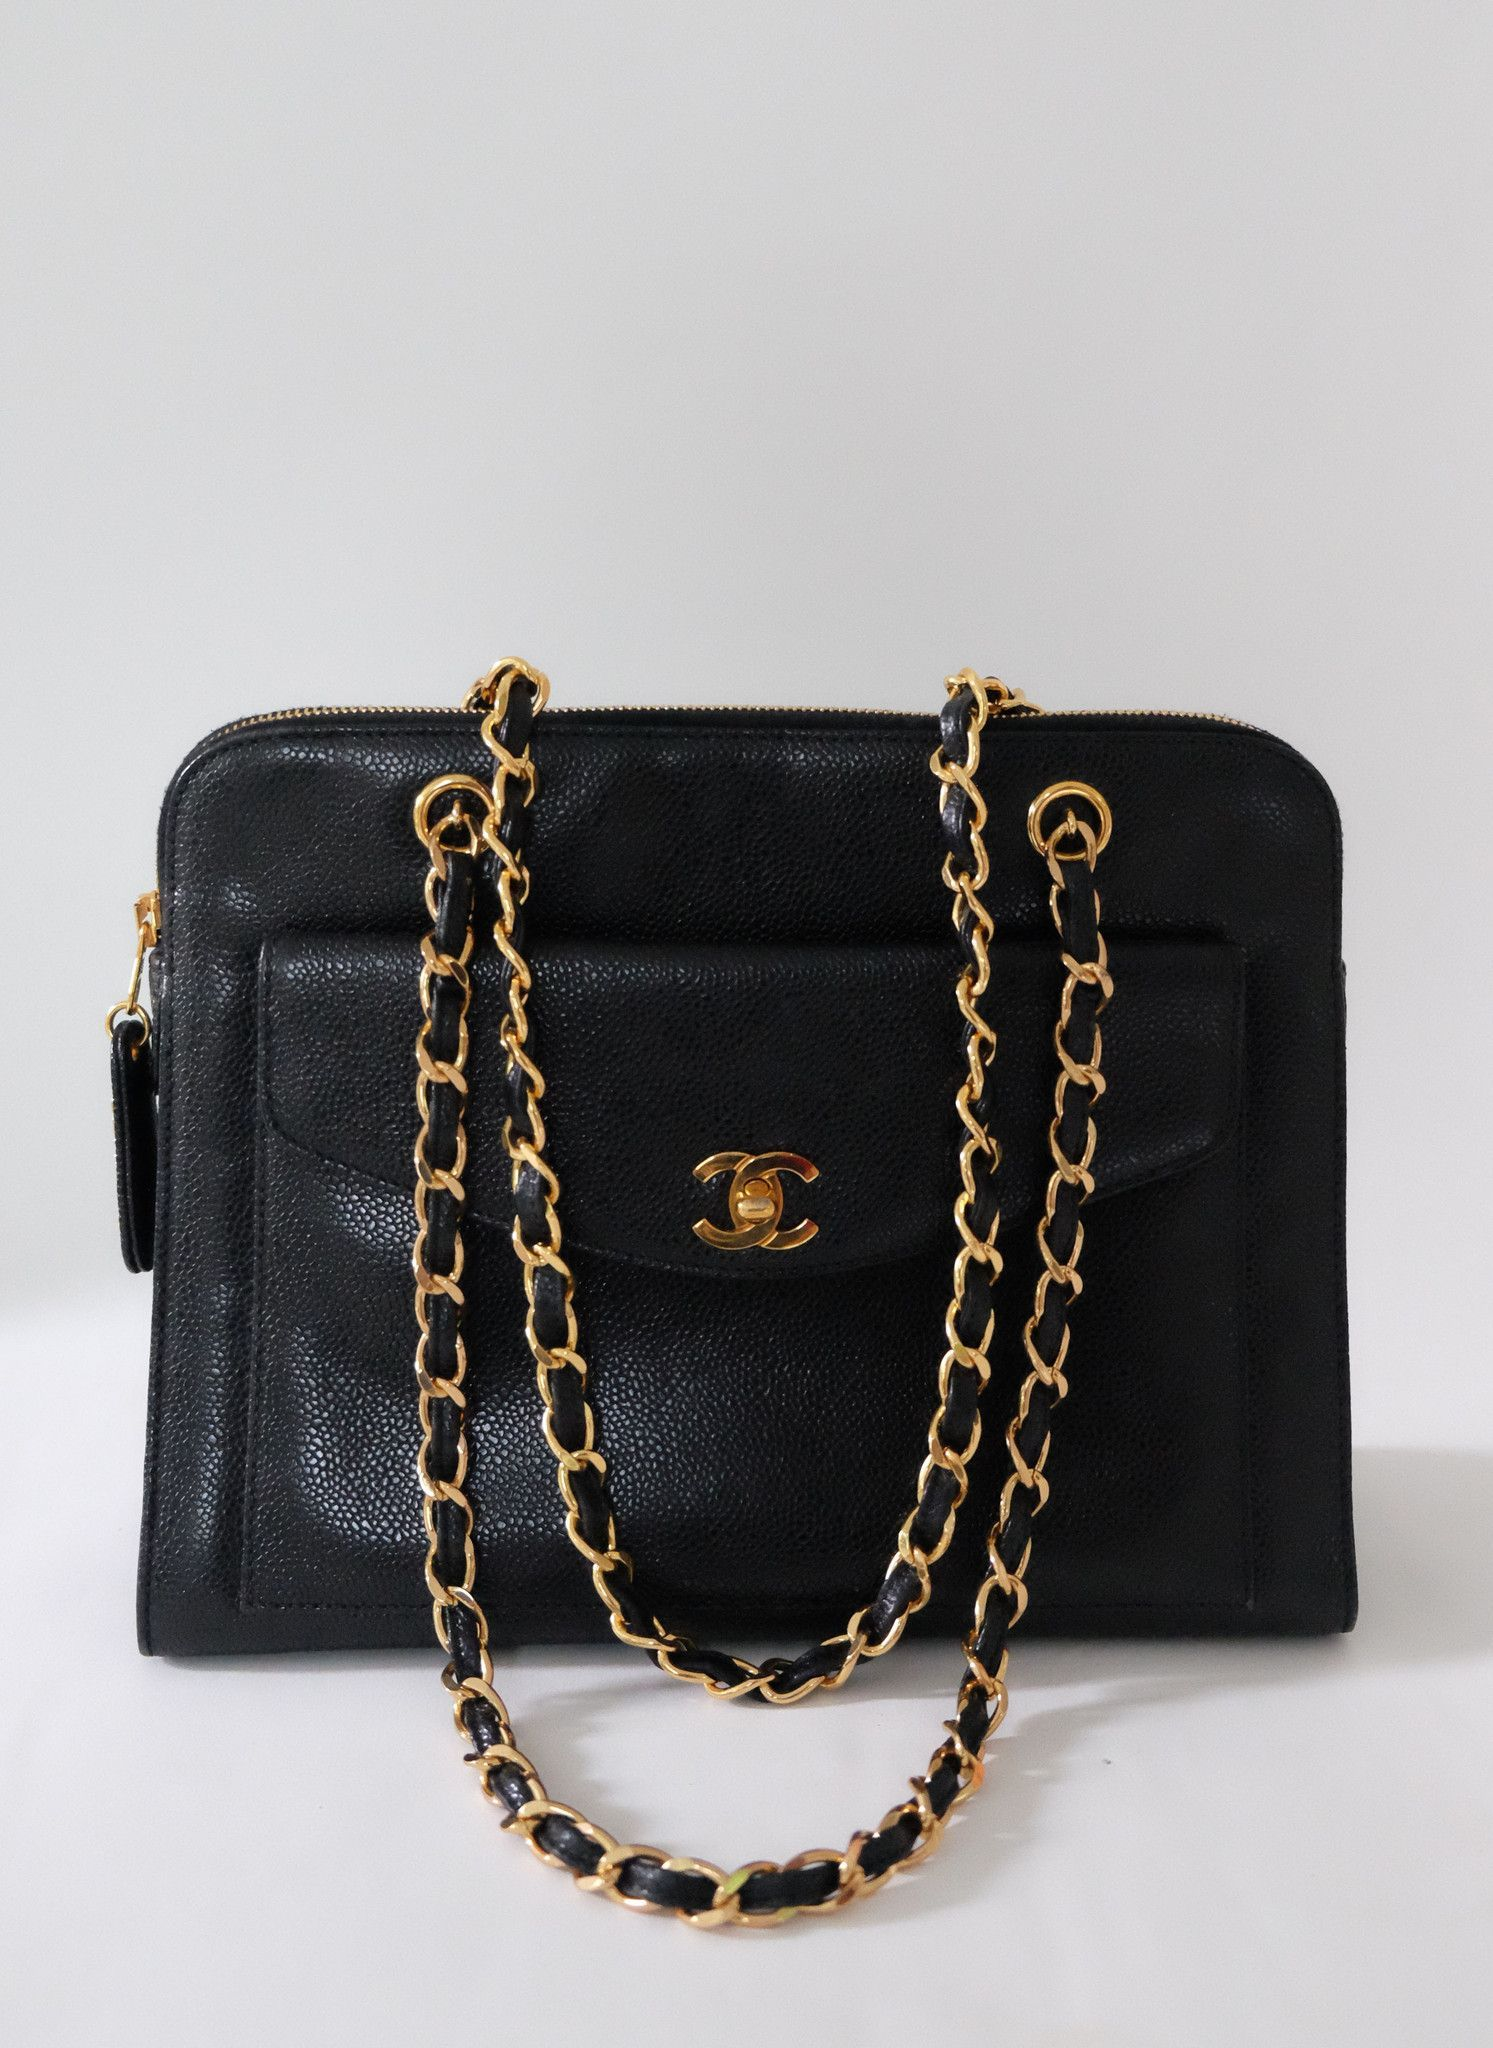 5cc30a89c0d1 PRODUCT INFO This authentic Chanel Vintage Front Pocket Camera Bag Caviar  Large is a timeless and iconic piece made for any fashionista.